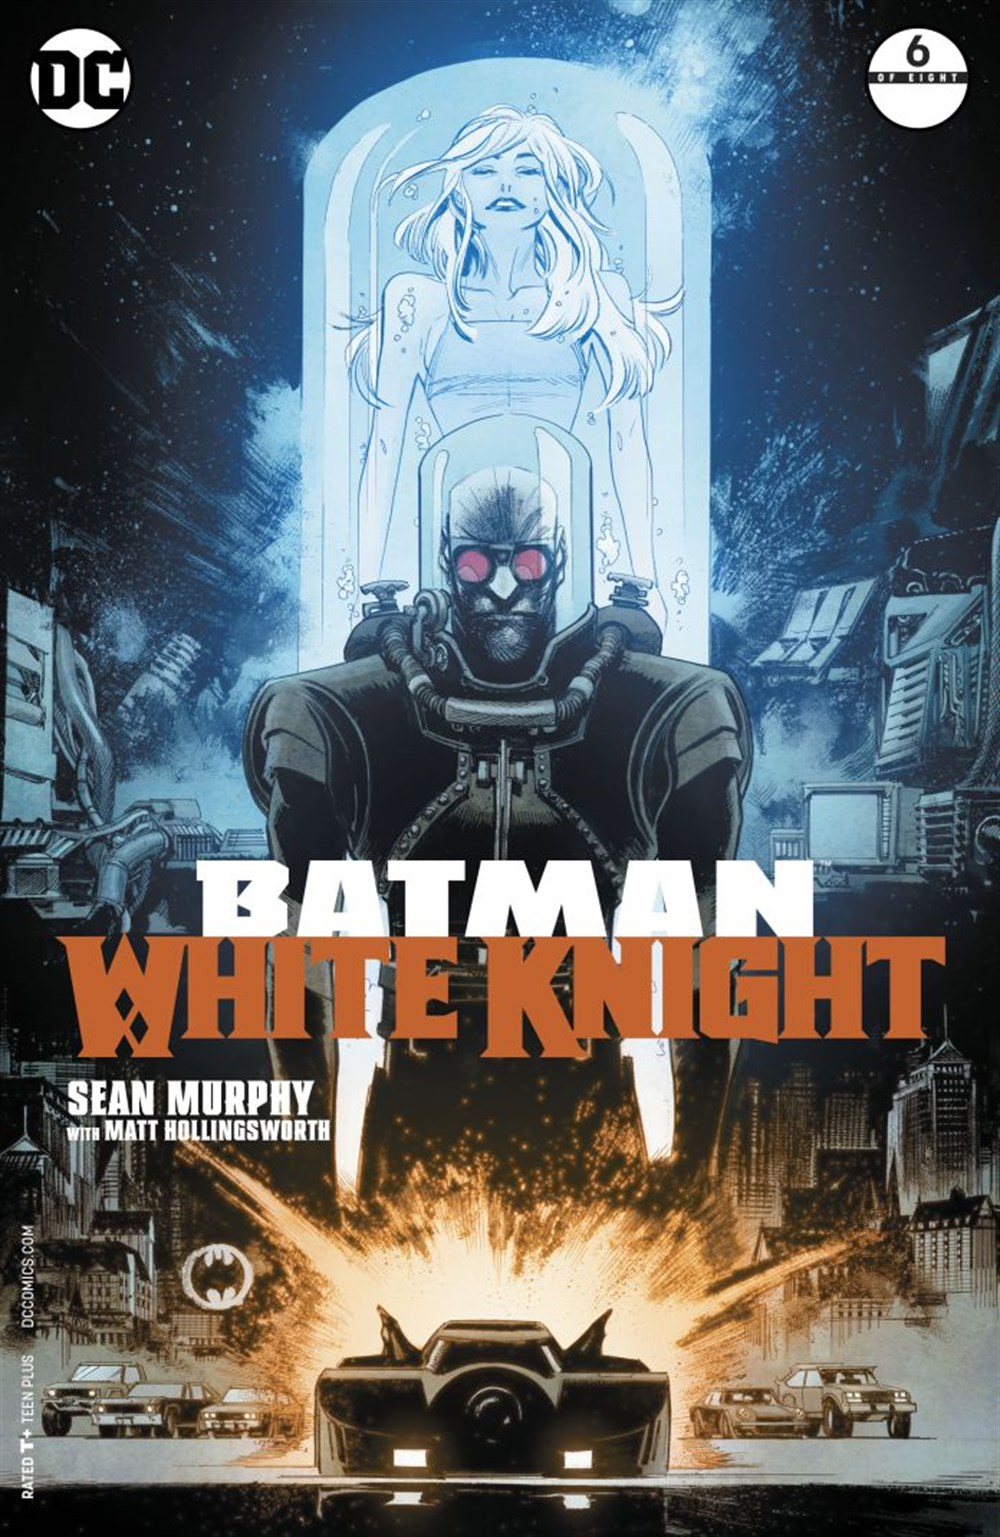 BATMAN WHITE KNIGHT #6